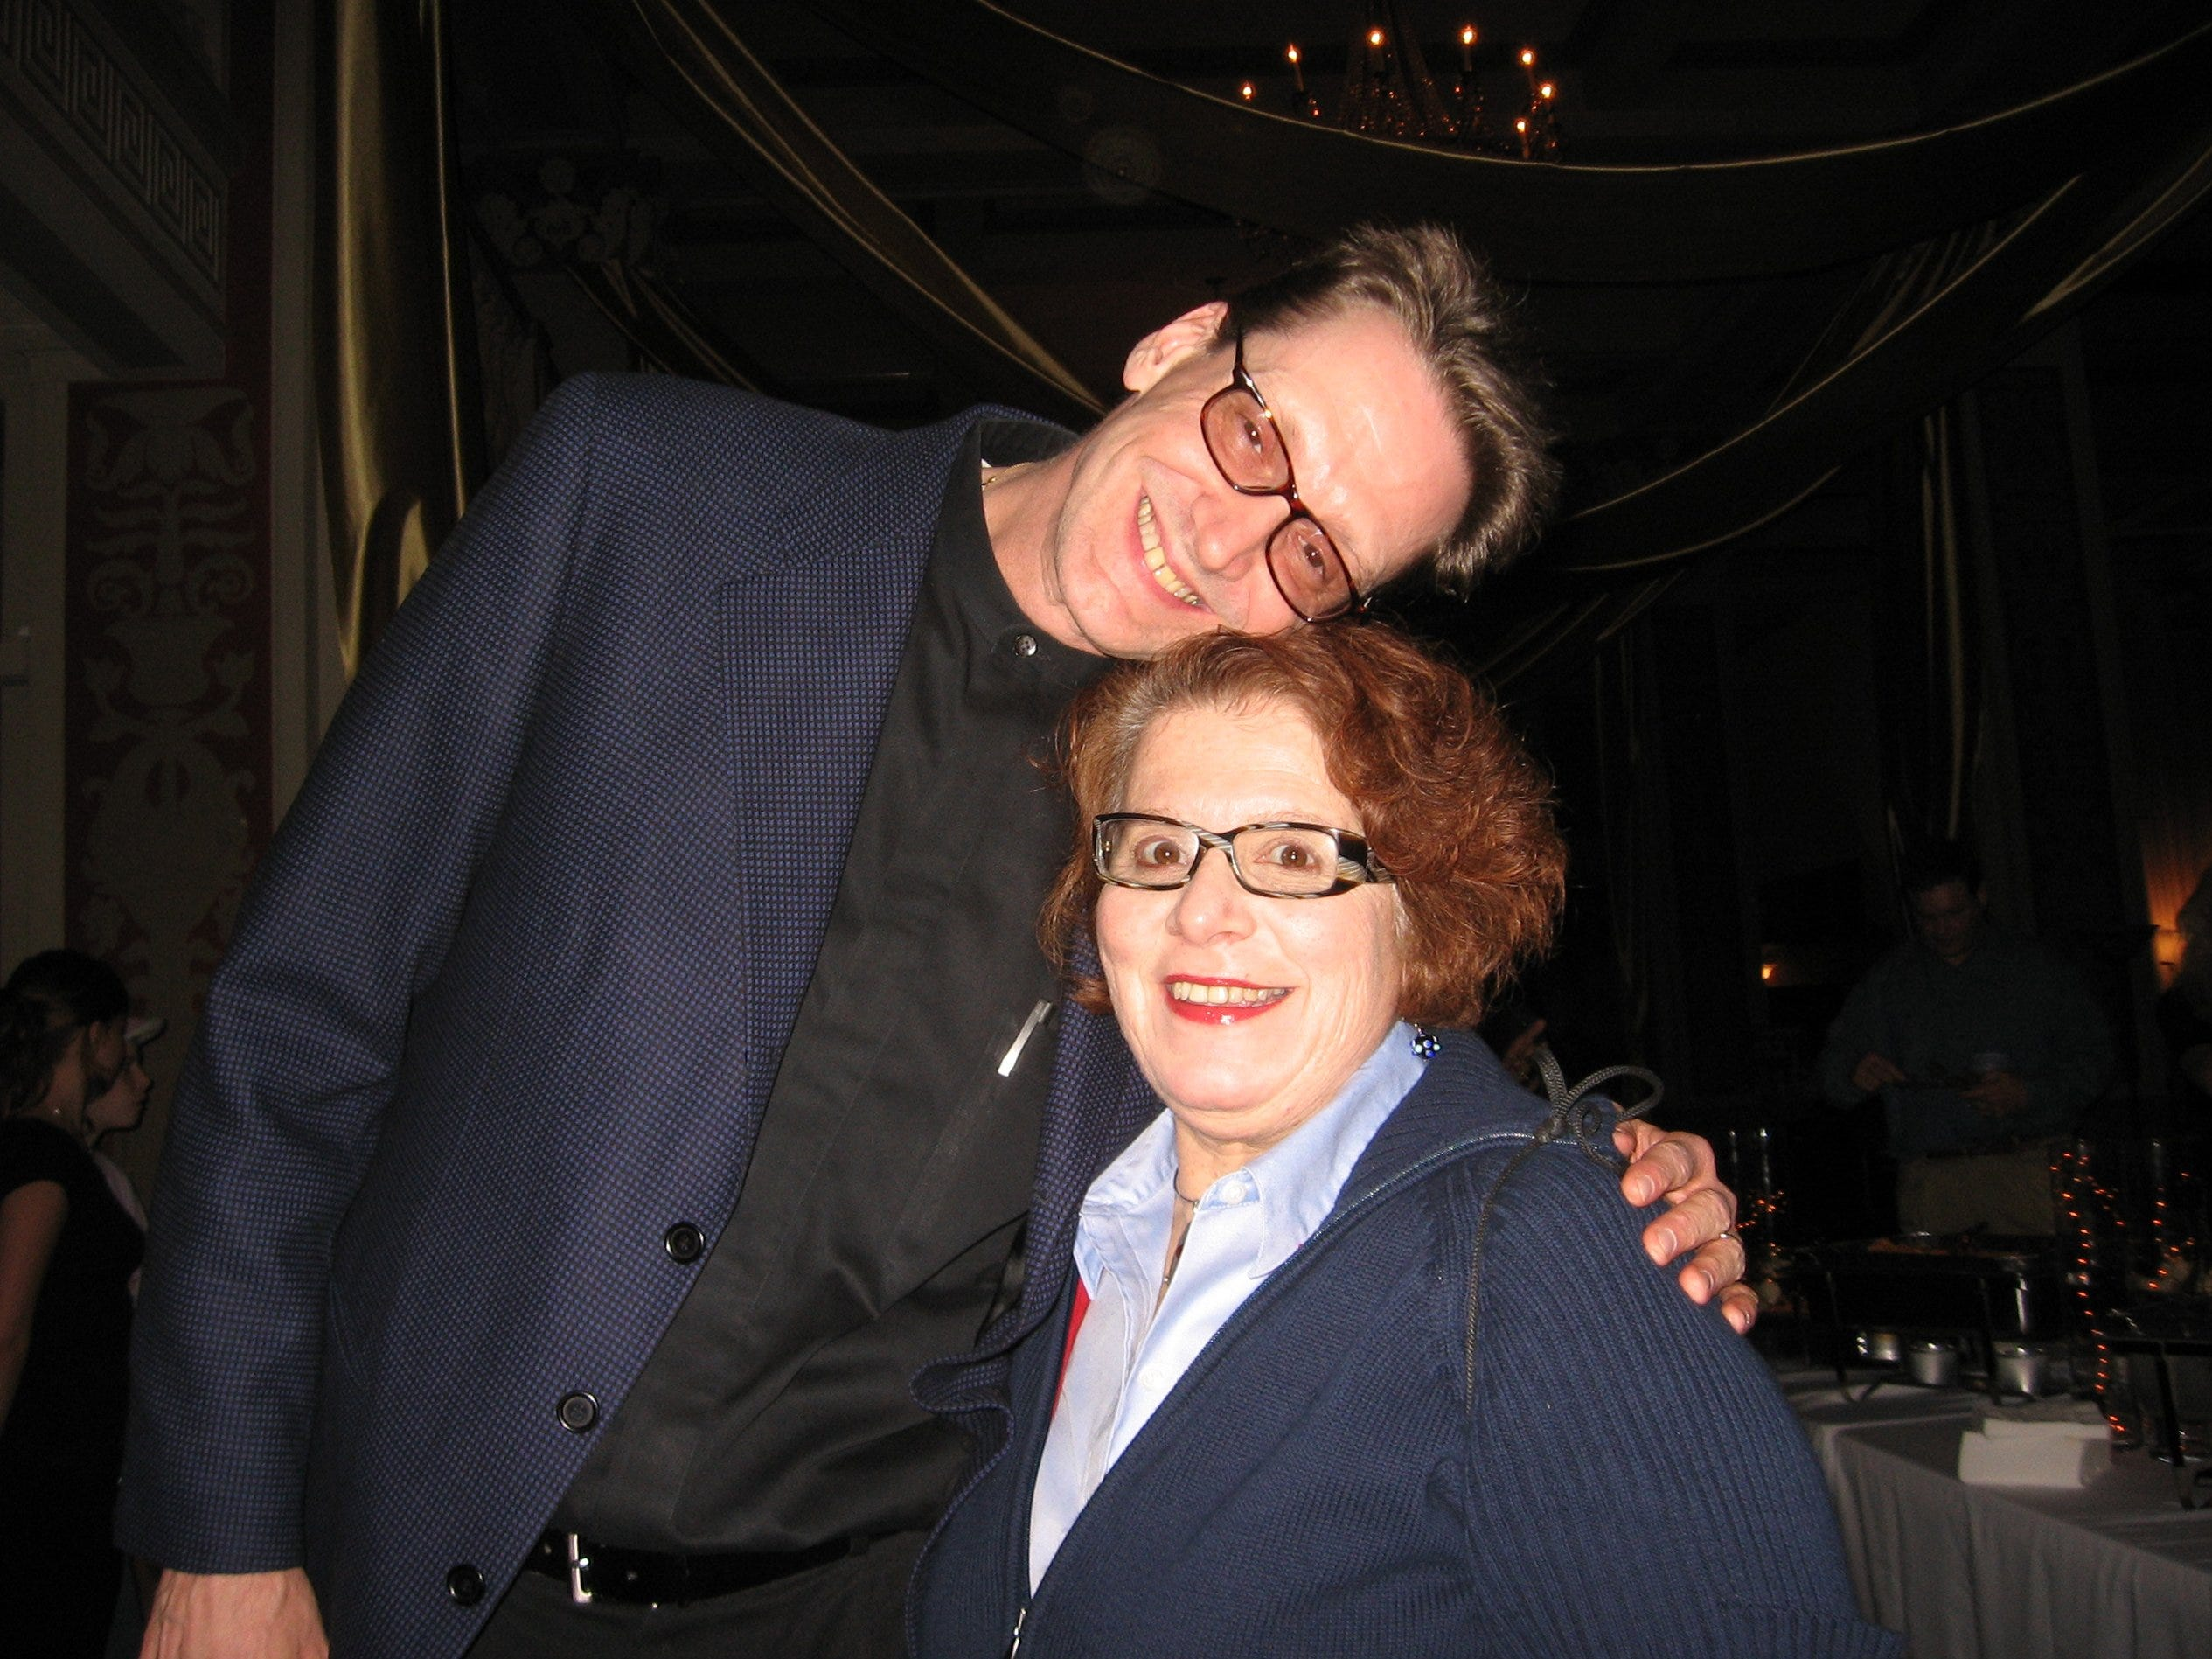 John Kilzer, left, performed at the CD release party for Larry Finch. With him is Judy Peiser.